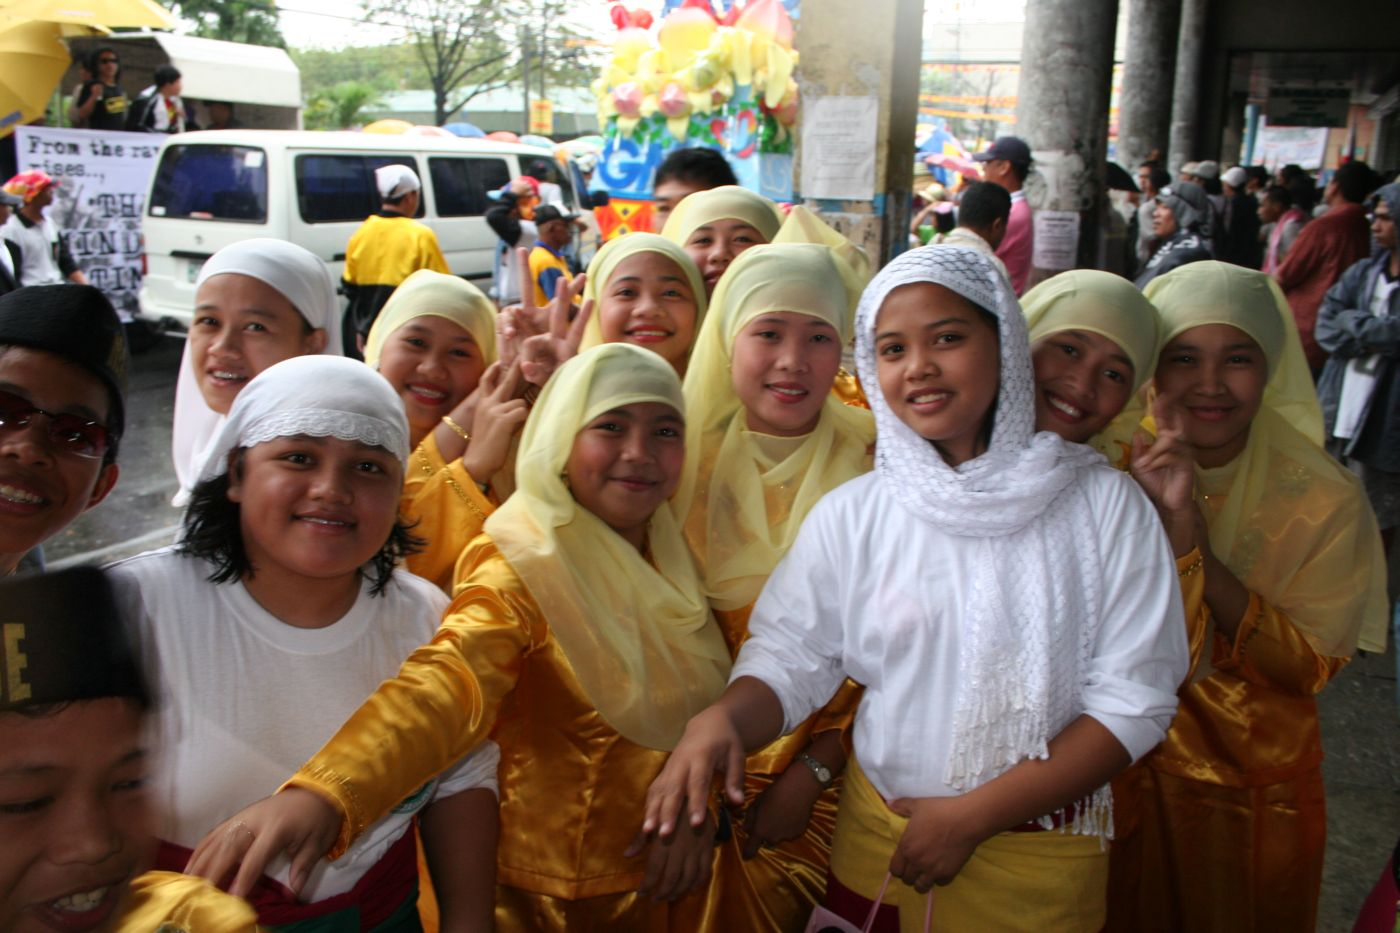 Moslem Girls at Festival.jpg